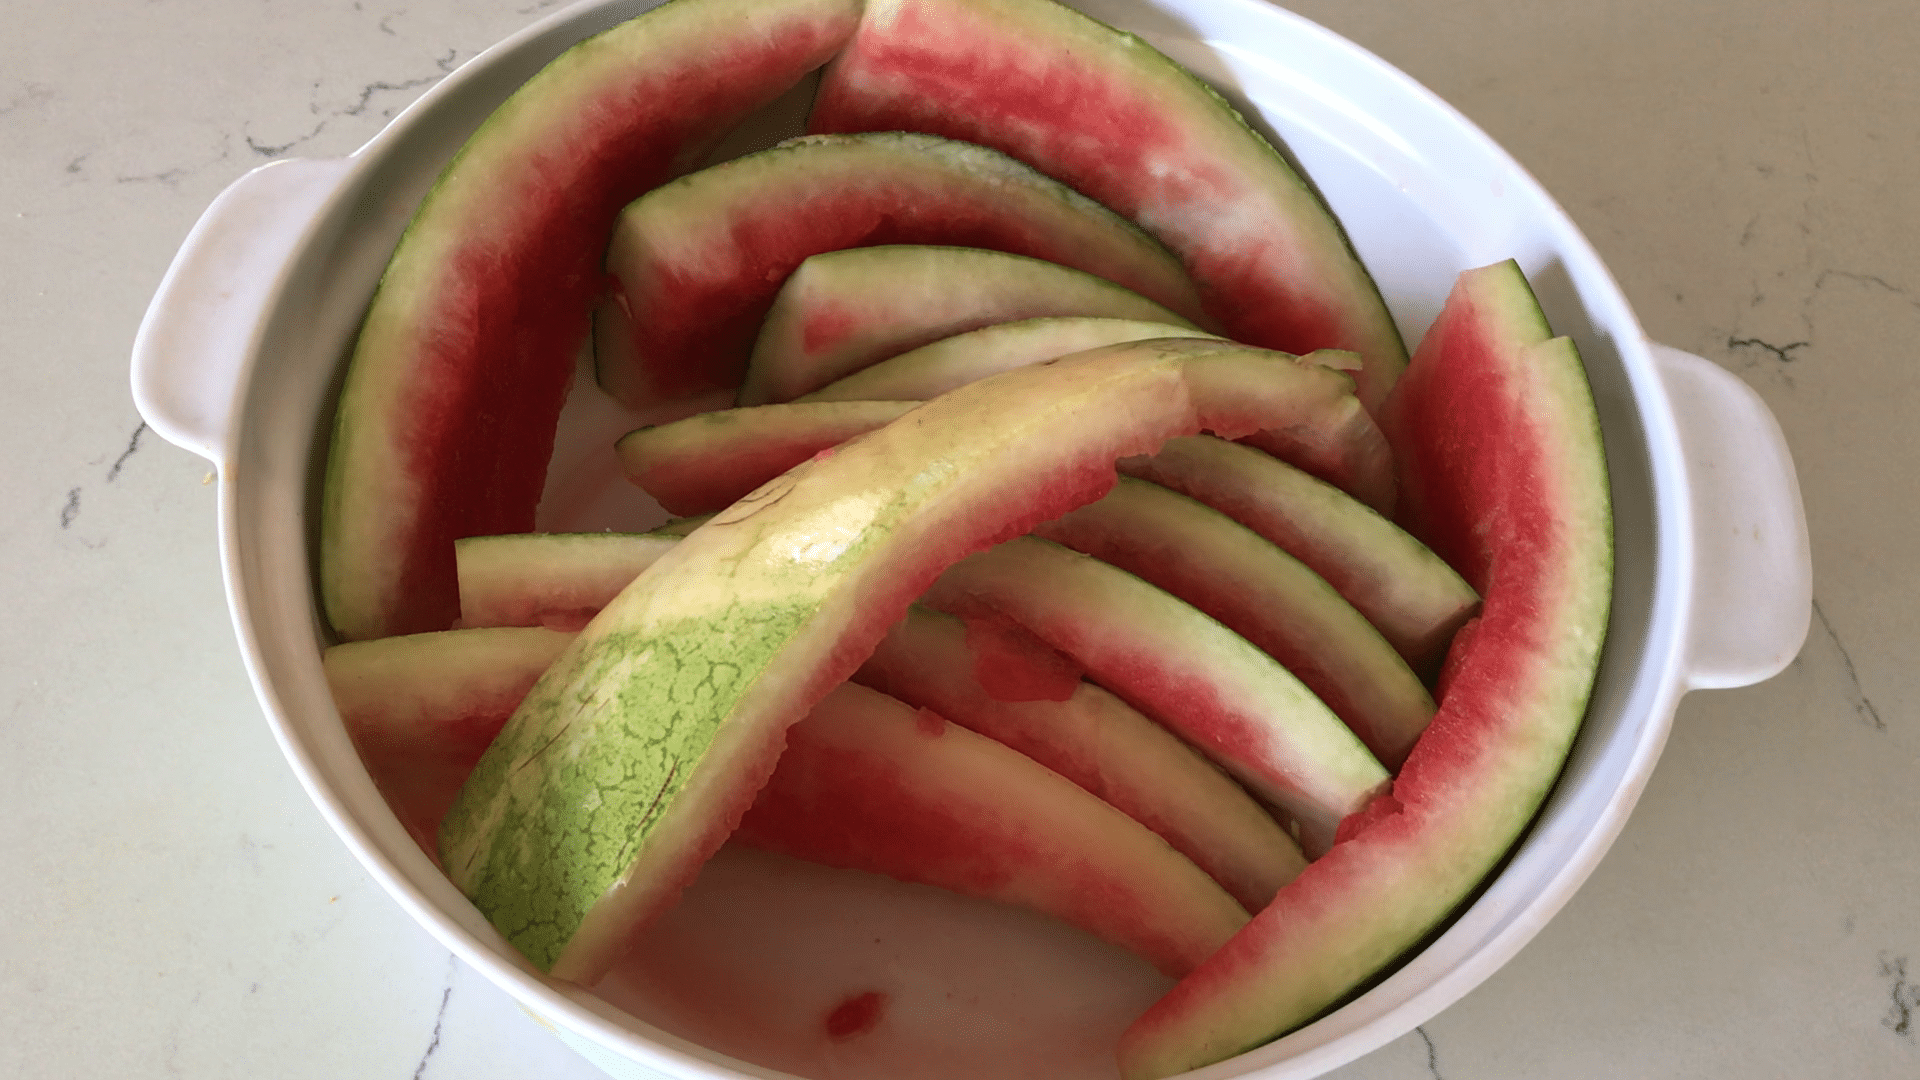 Watermelon rind is on the table